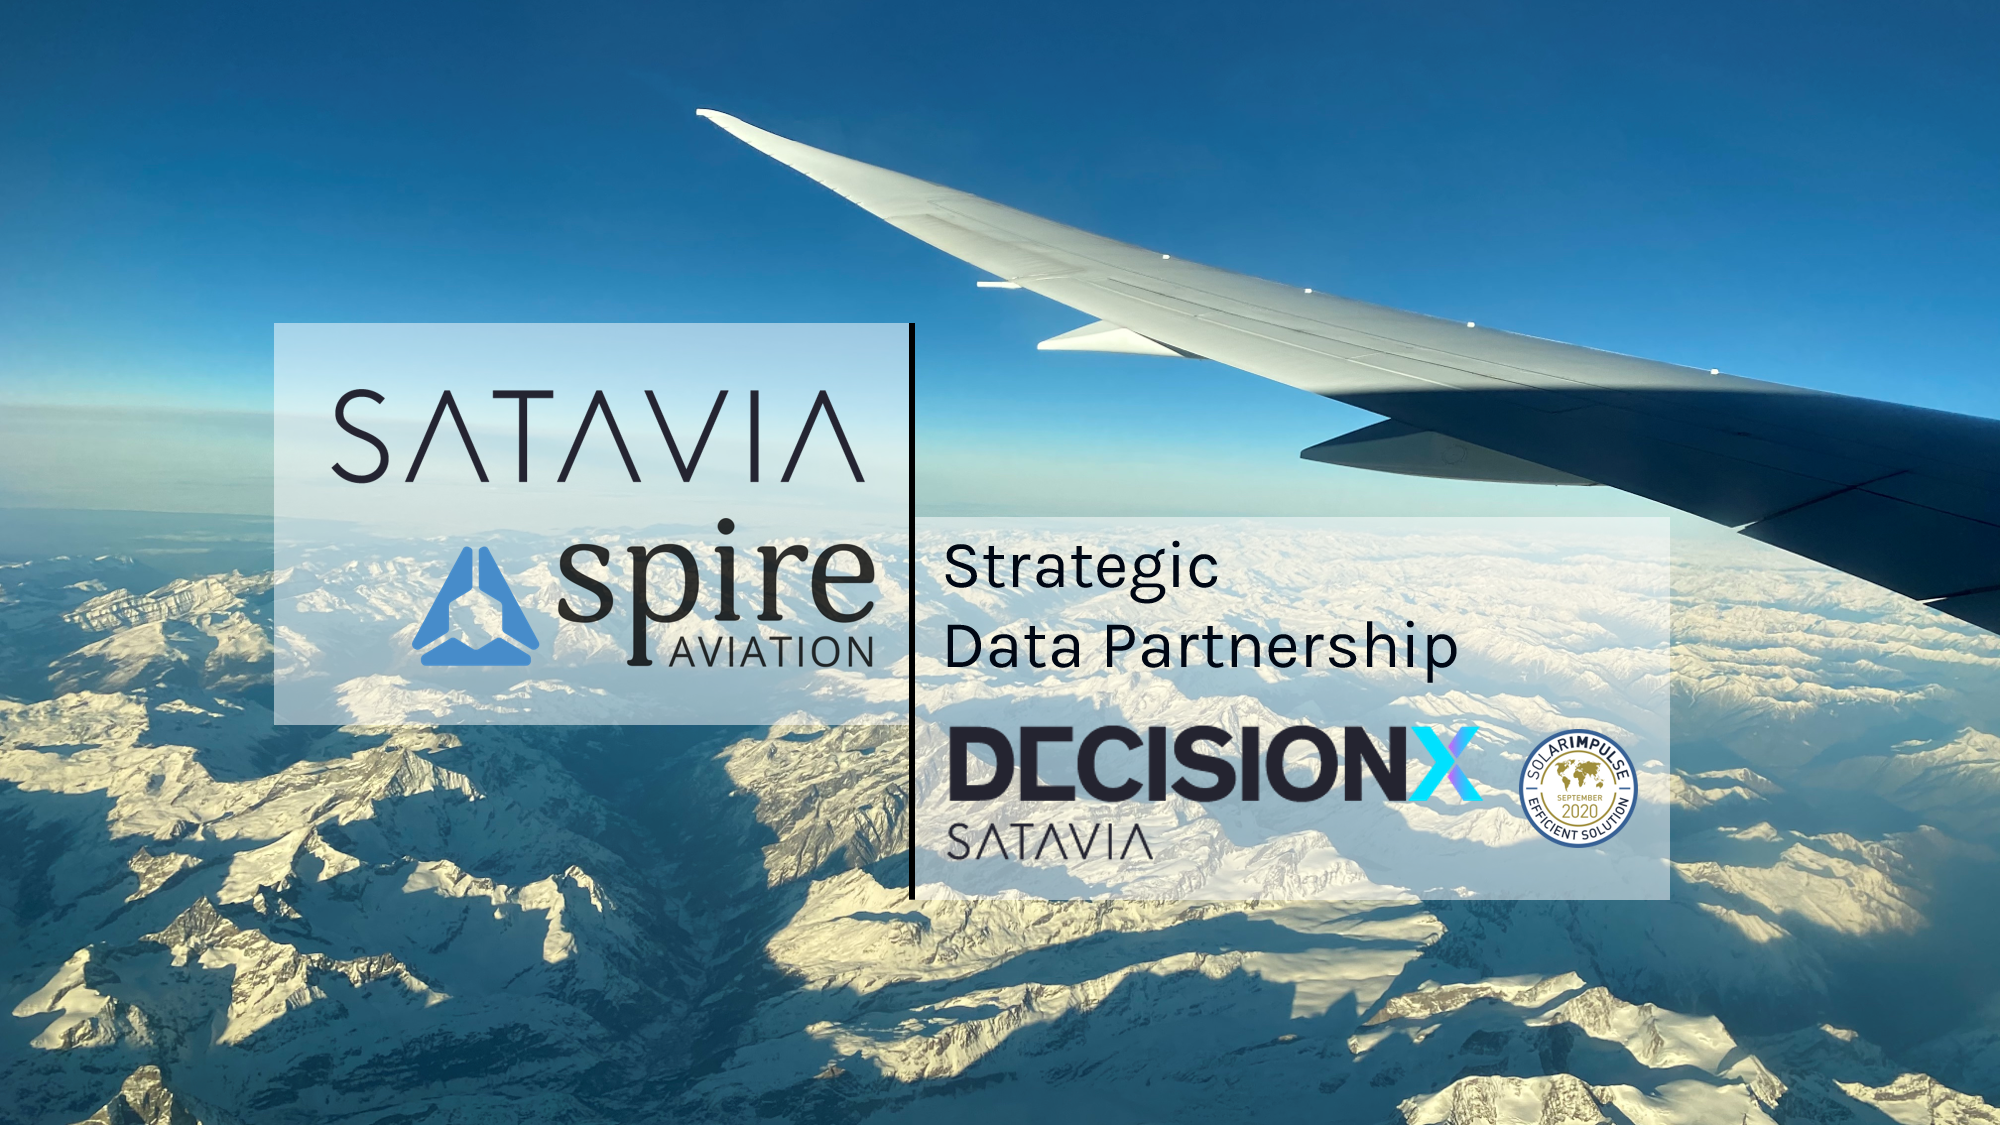 20200930 satavia-spire-partnership-decisionx-final